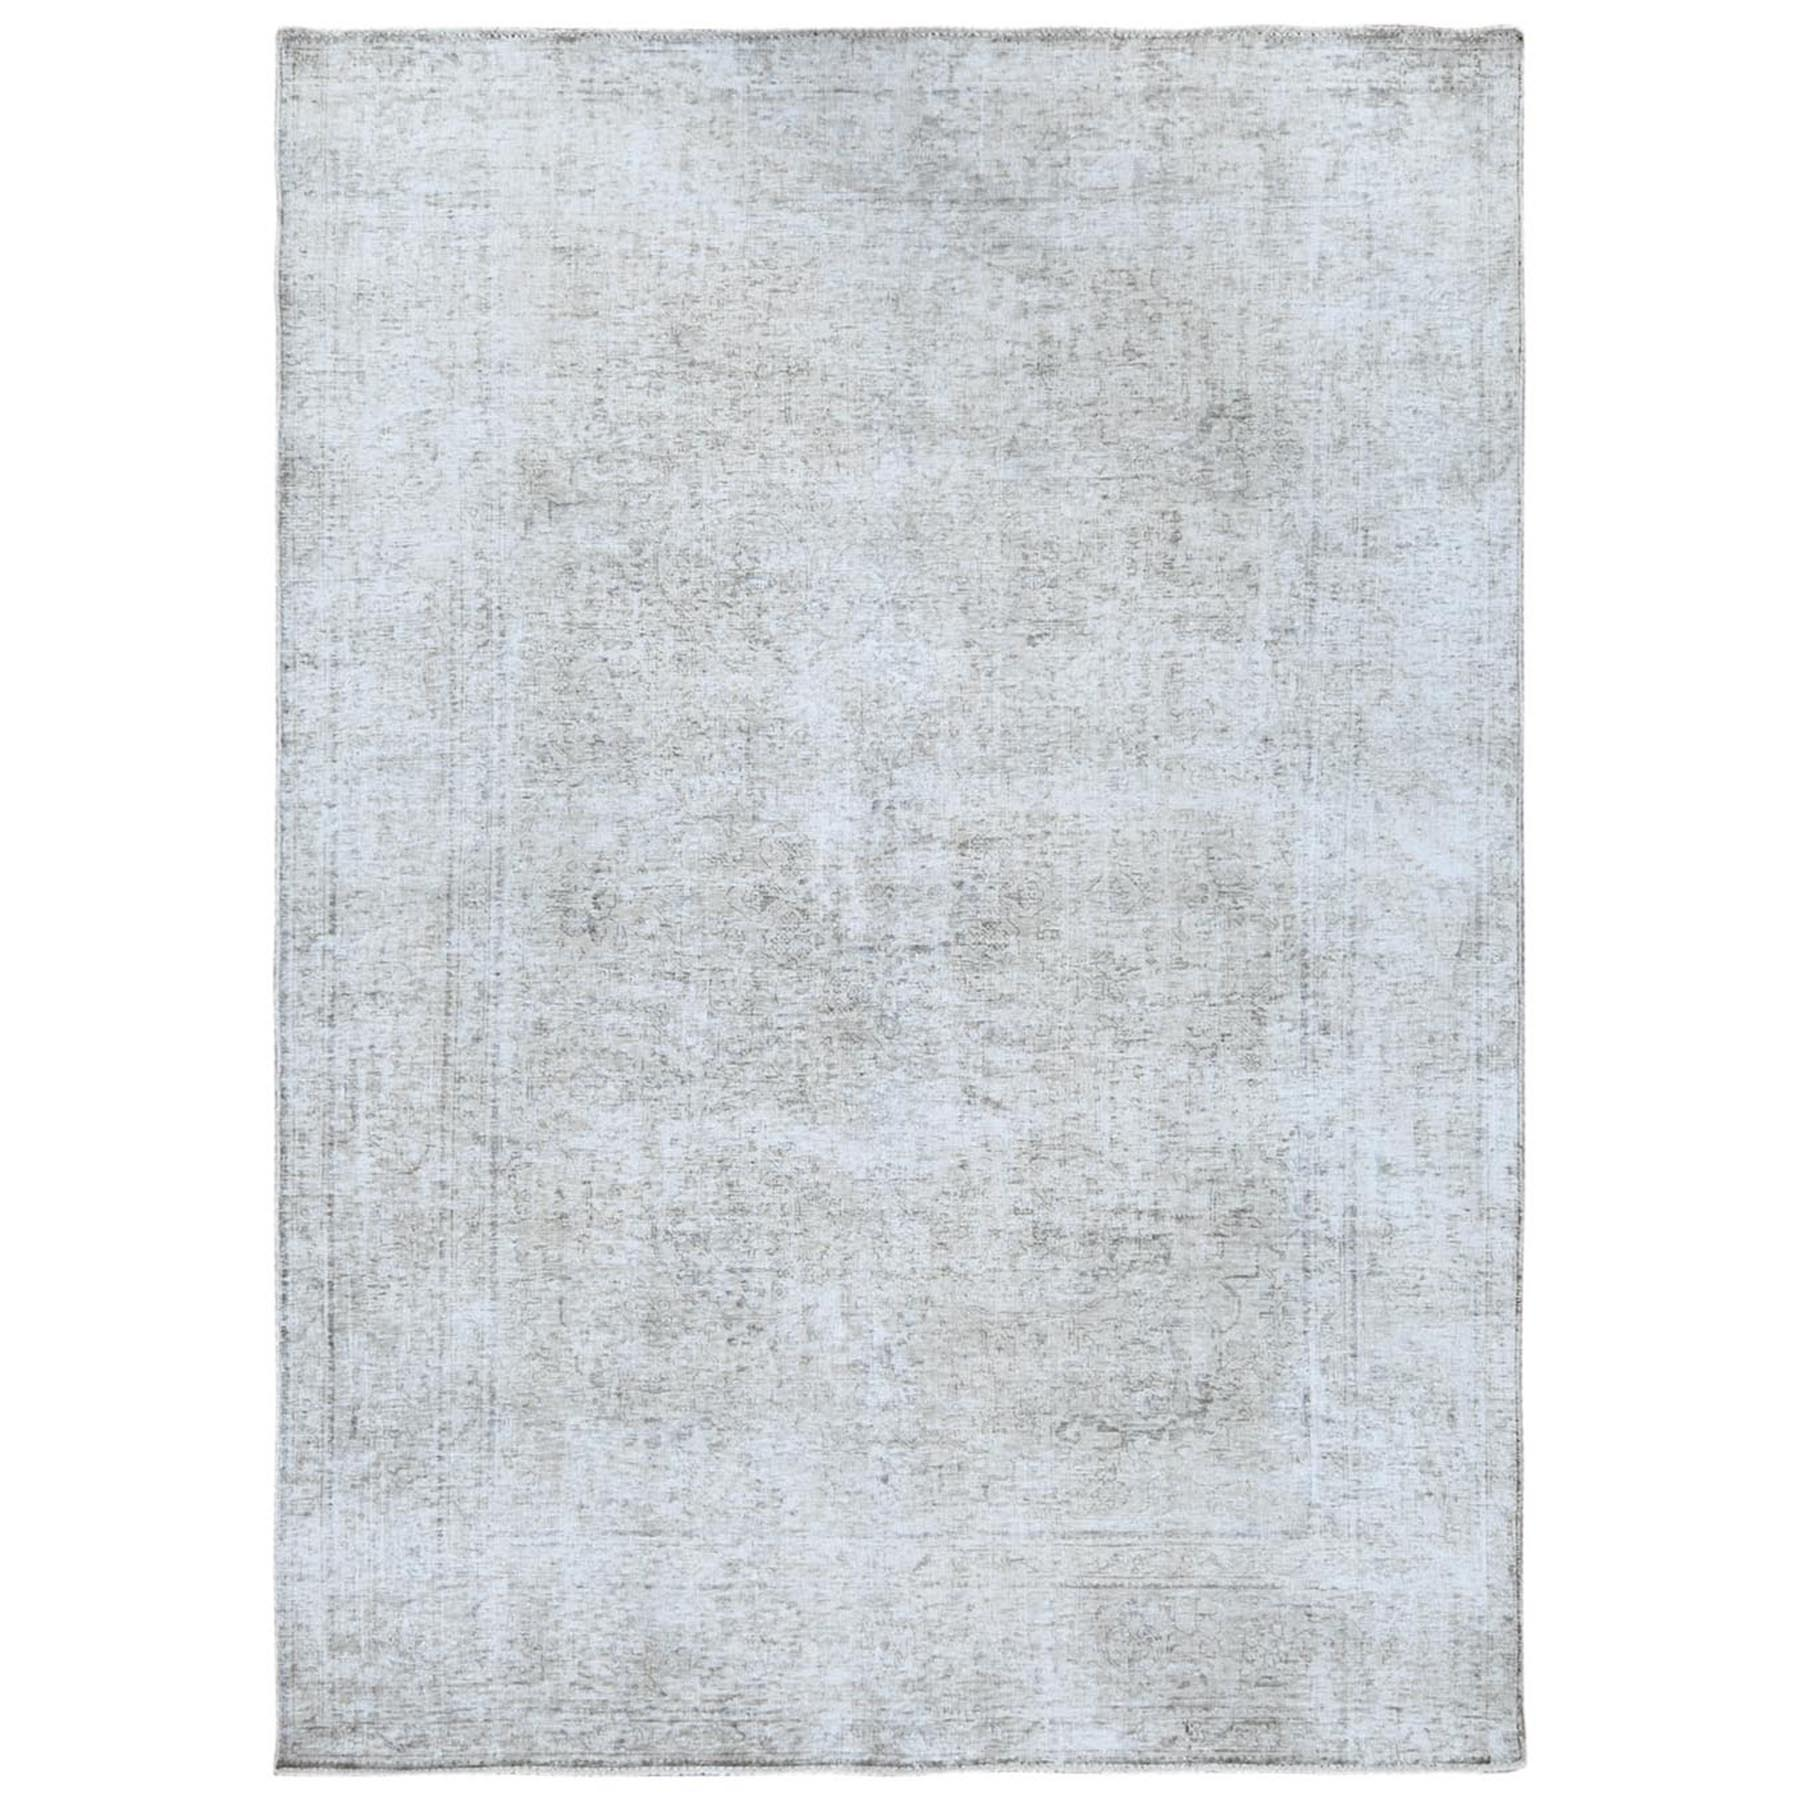 Fetneh Collection And Vintage Overdyed Collection Hand Knotted Grey Rug No: 1122498